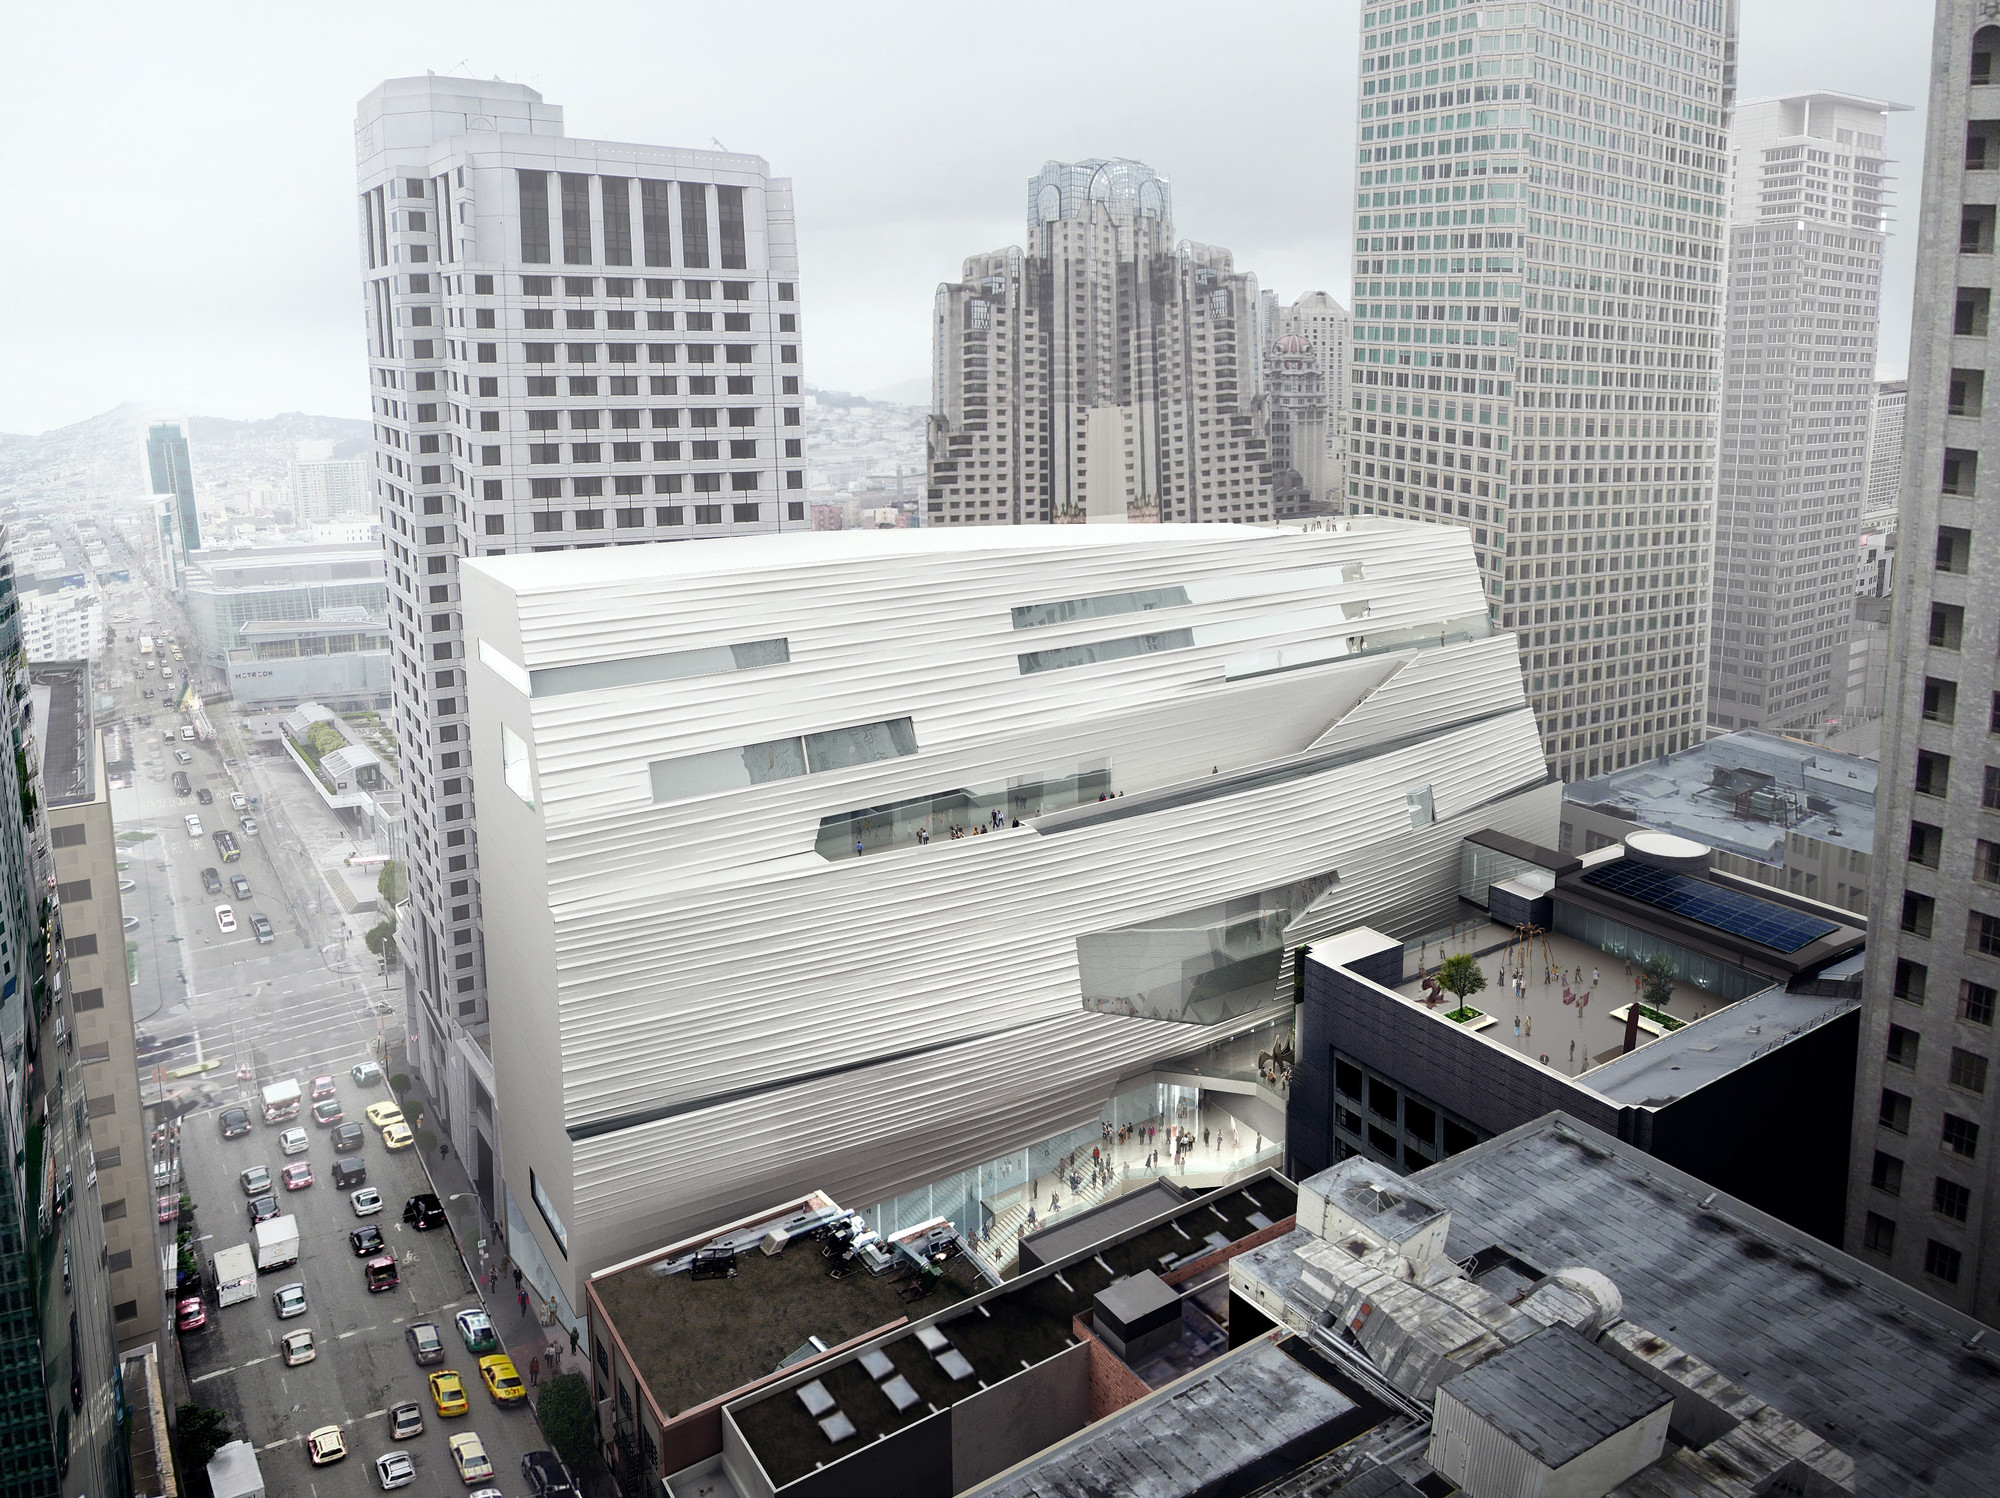 Update: SFMOMA Expansion / Snøhetta, SFMOMA Expansion Aerial Southeast Façade; Courtesy of MIR and Snøhetta